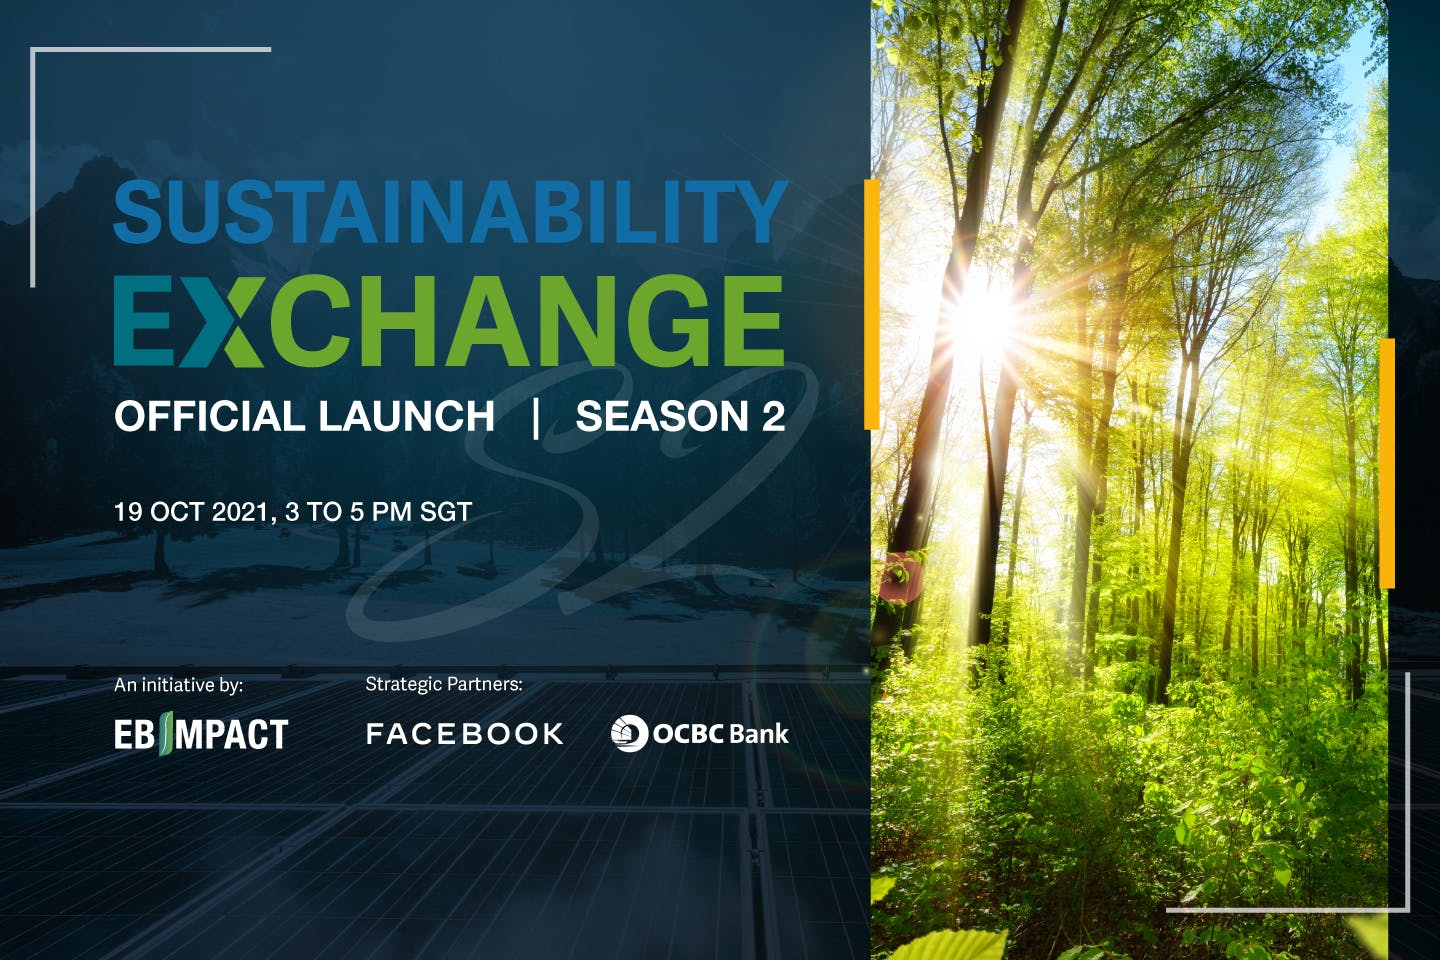 Official Launch of Sustainability Exchange Season 2